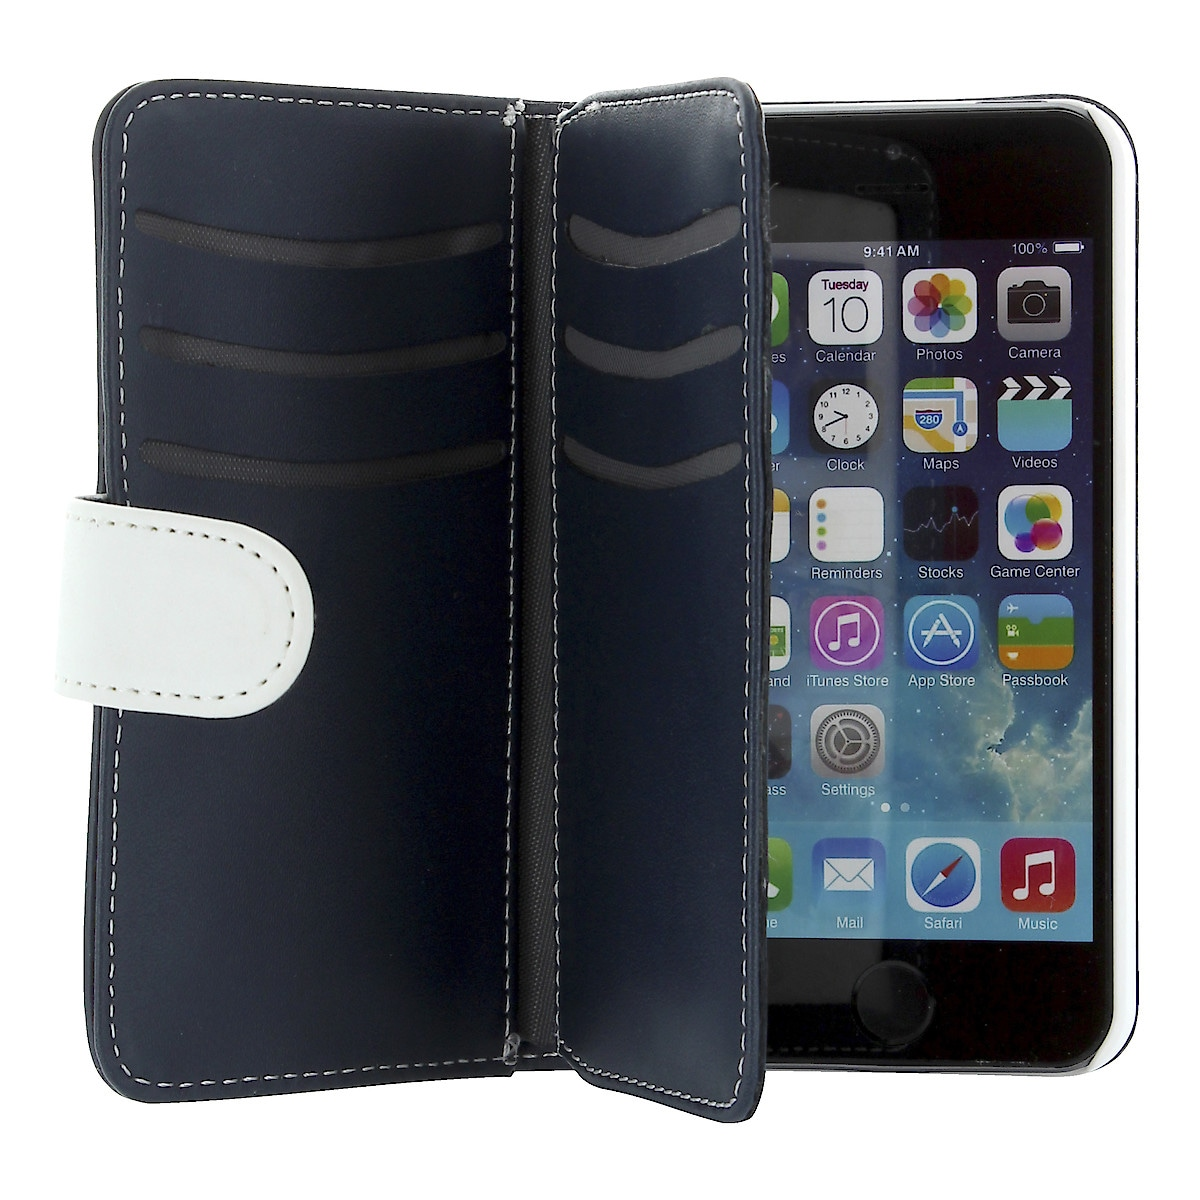 Holdit Wallet Case for iPhone 5